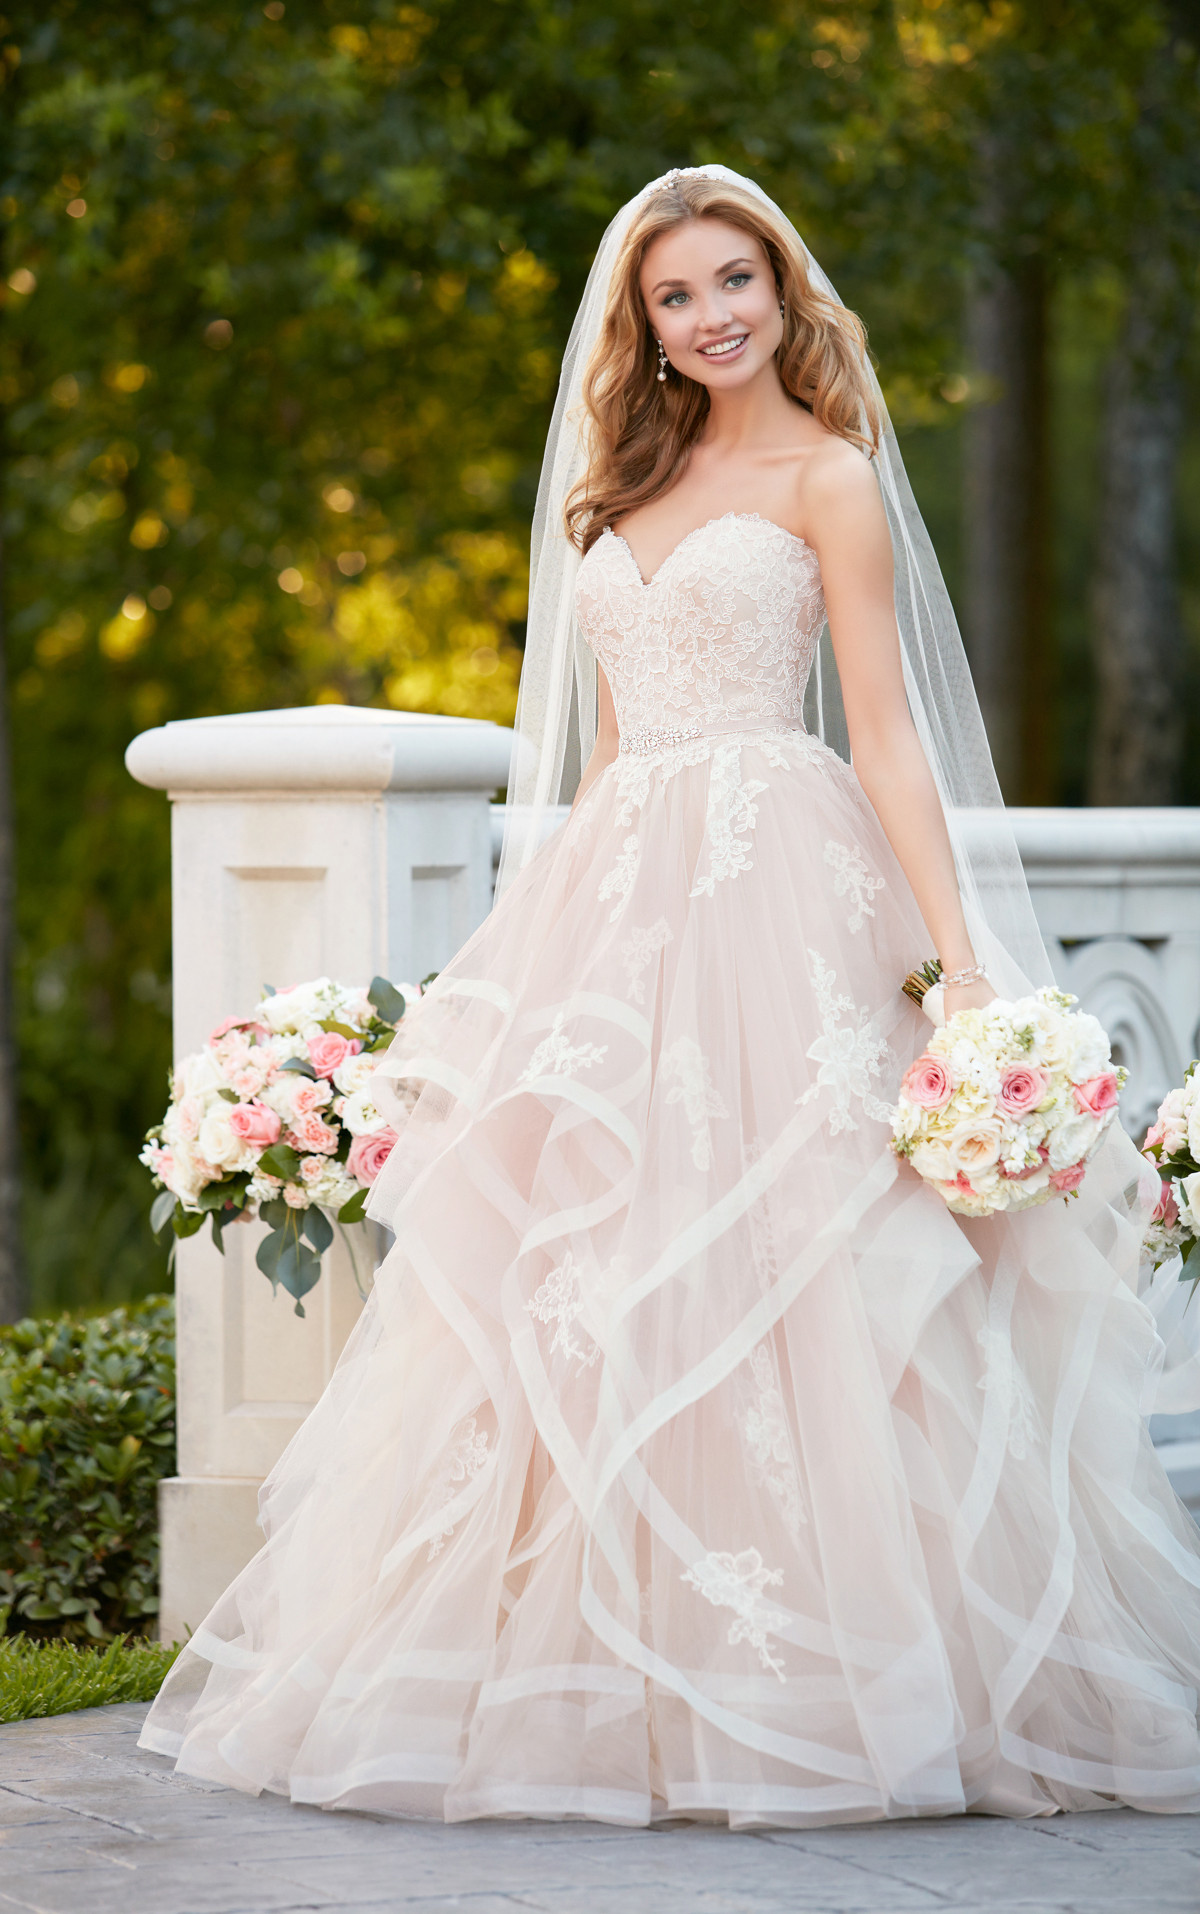 Pink Gowns Dress For Weddings  Pink Floral Bridal Gown with Textured Skirt